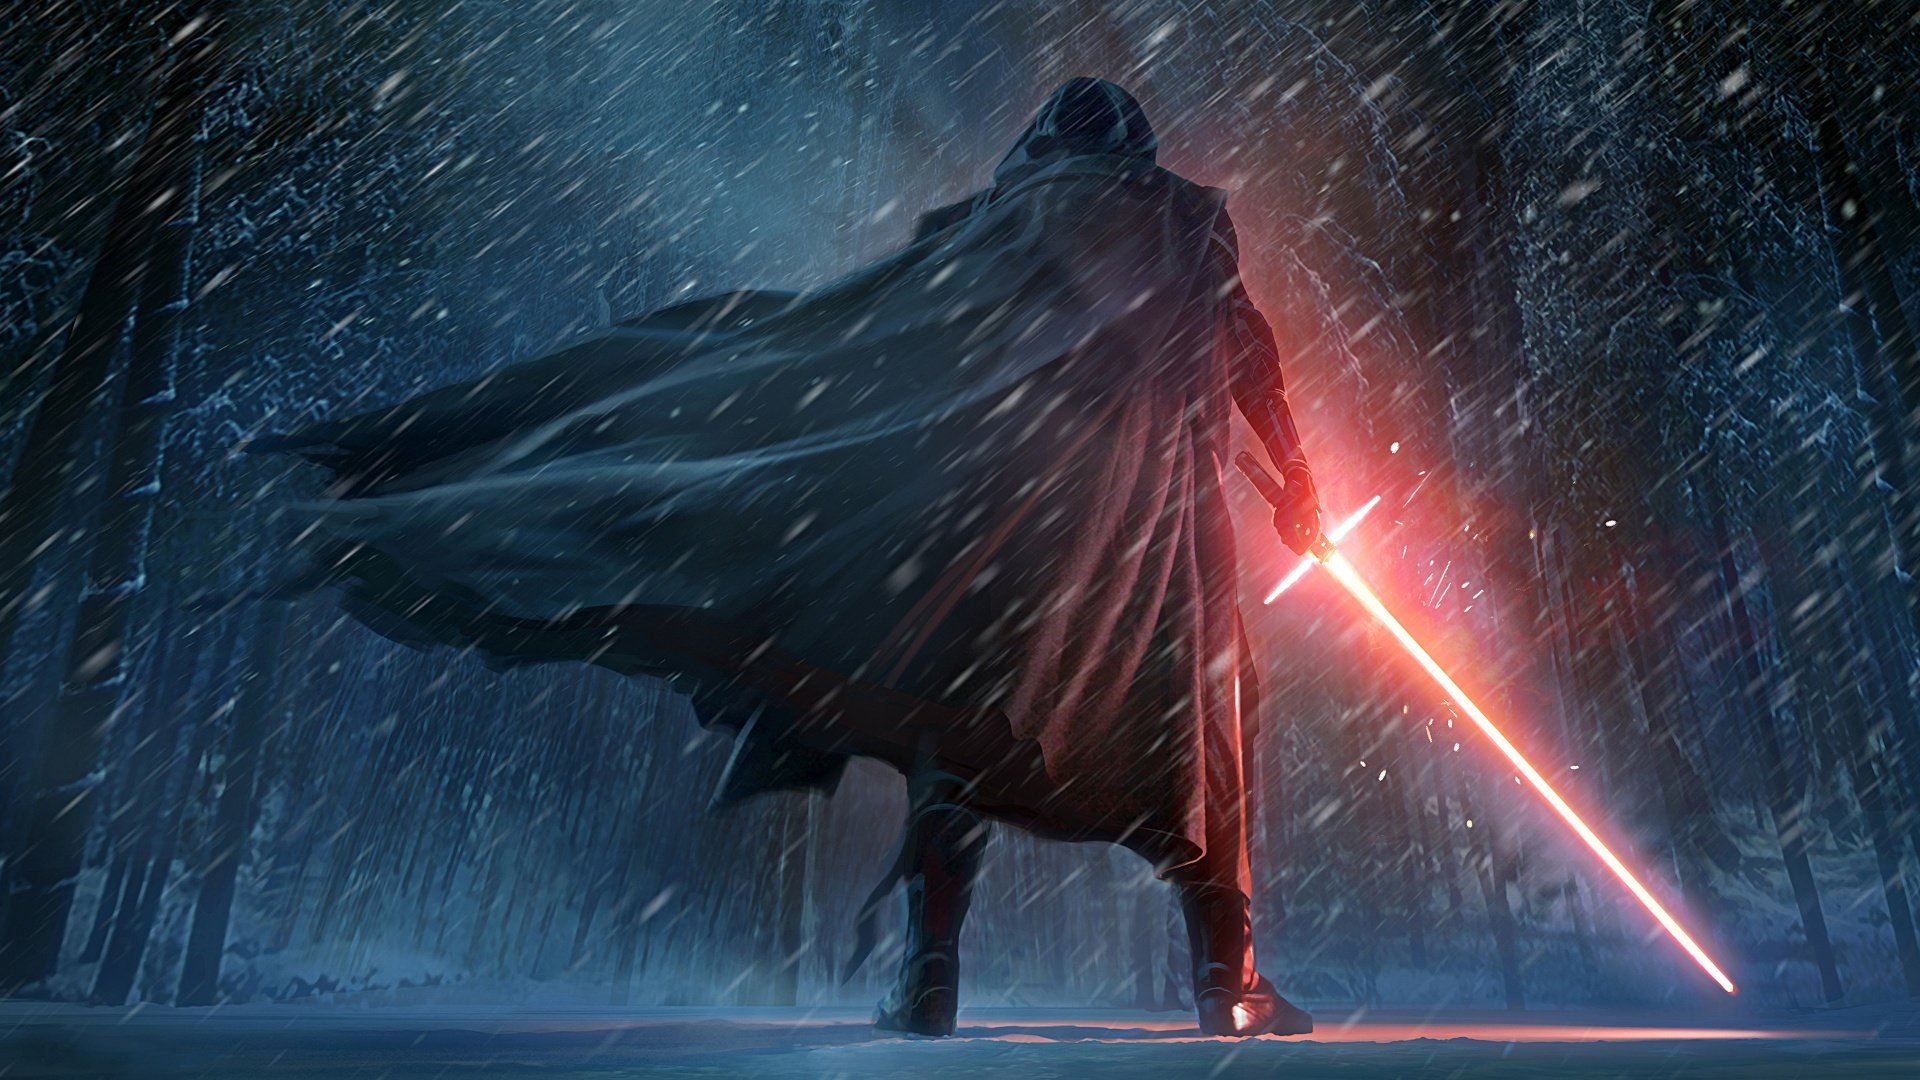 Kylo Ren Star Wars The Force Awakens Artwork 1920x1080